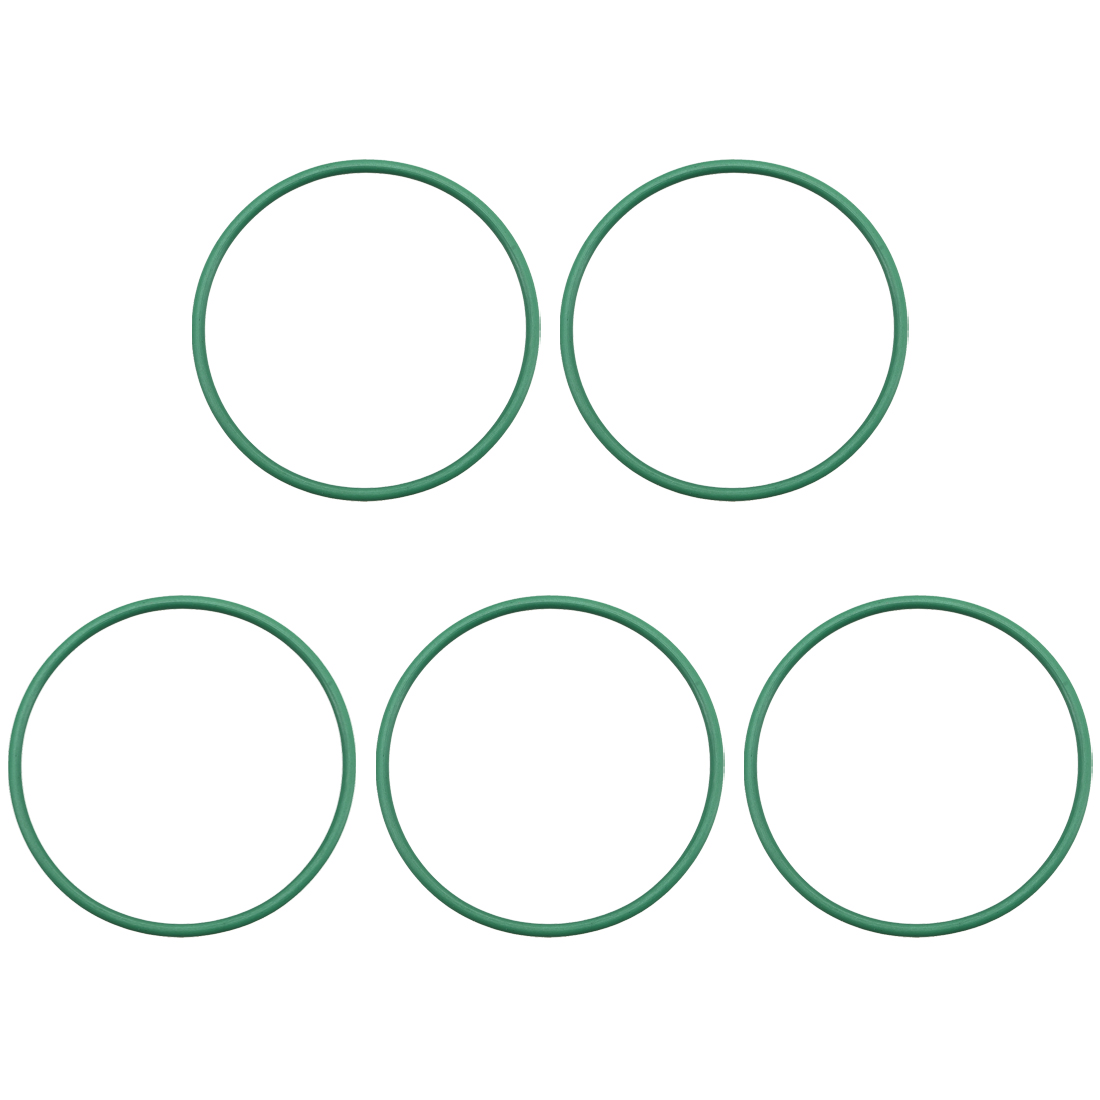 5pcs 40mm x 1.9mm Size Mechanical Rubber O Ring Oil Seal Gaskets Green